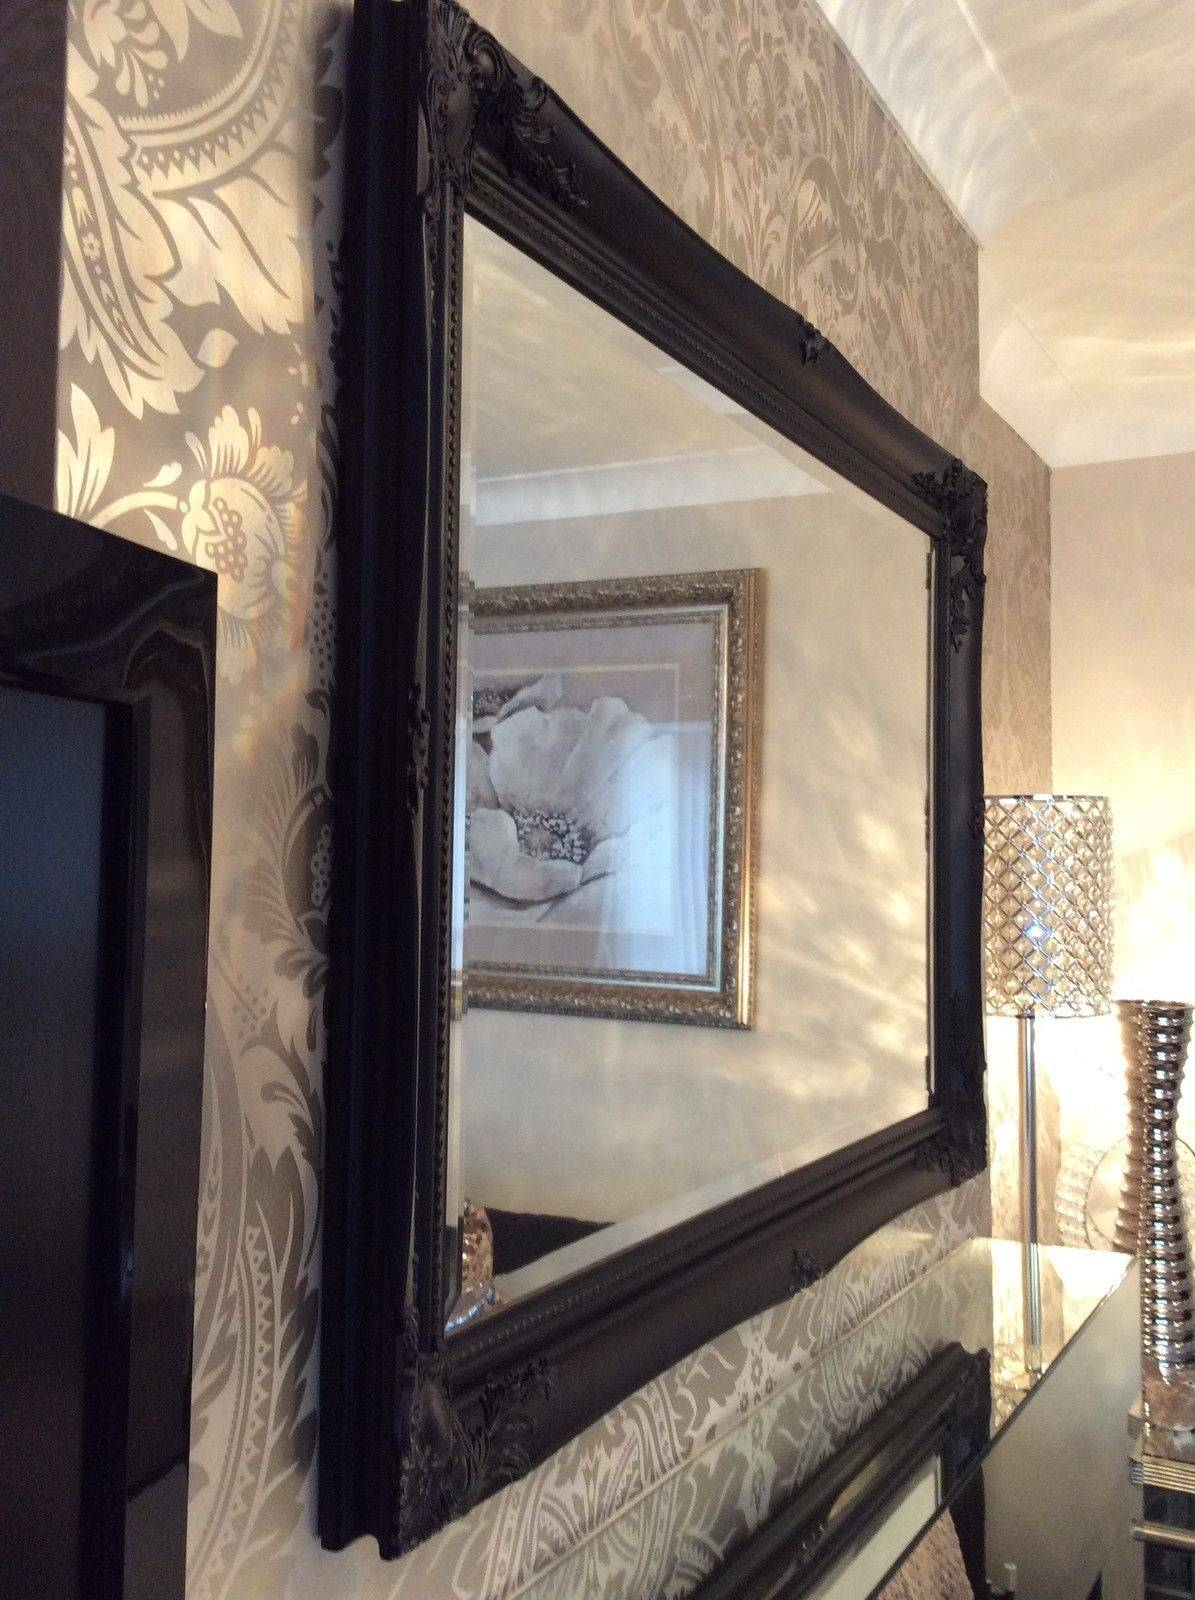 Black Shabby Chic Framed Ornate Overmantle Wall Mirror – Range Of Regarding Long Black Wall Mirrors (View 9 of 15)